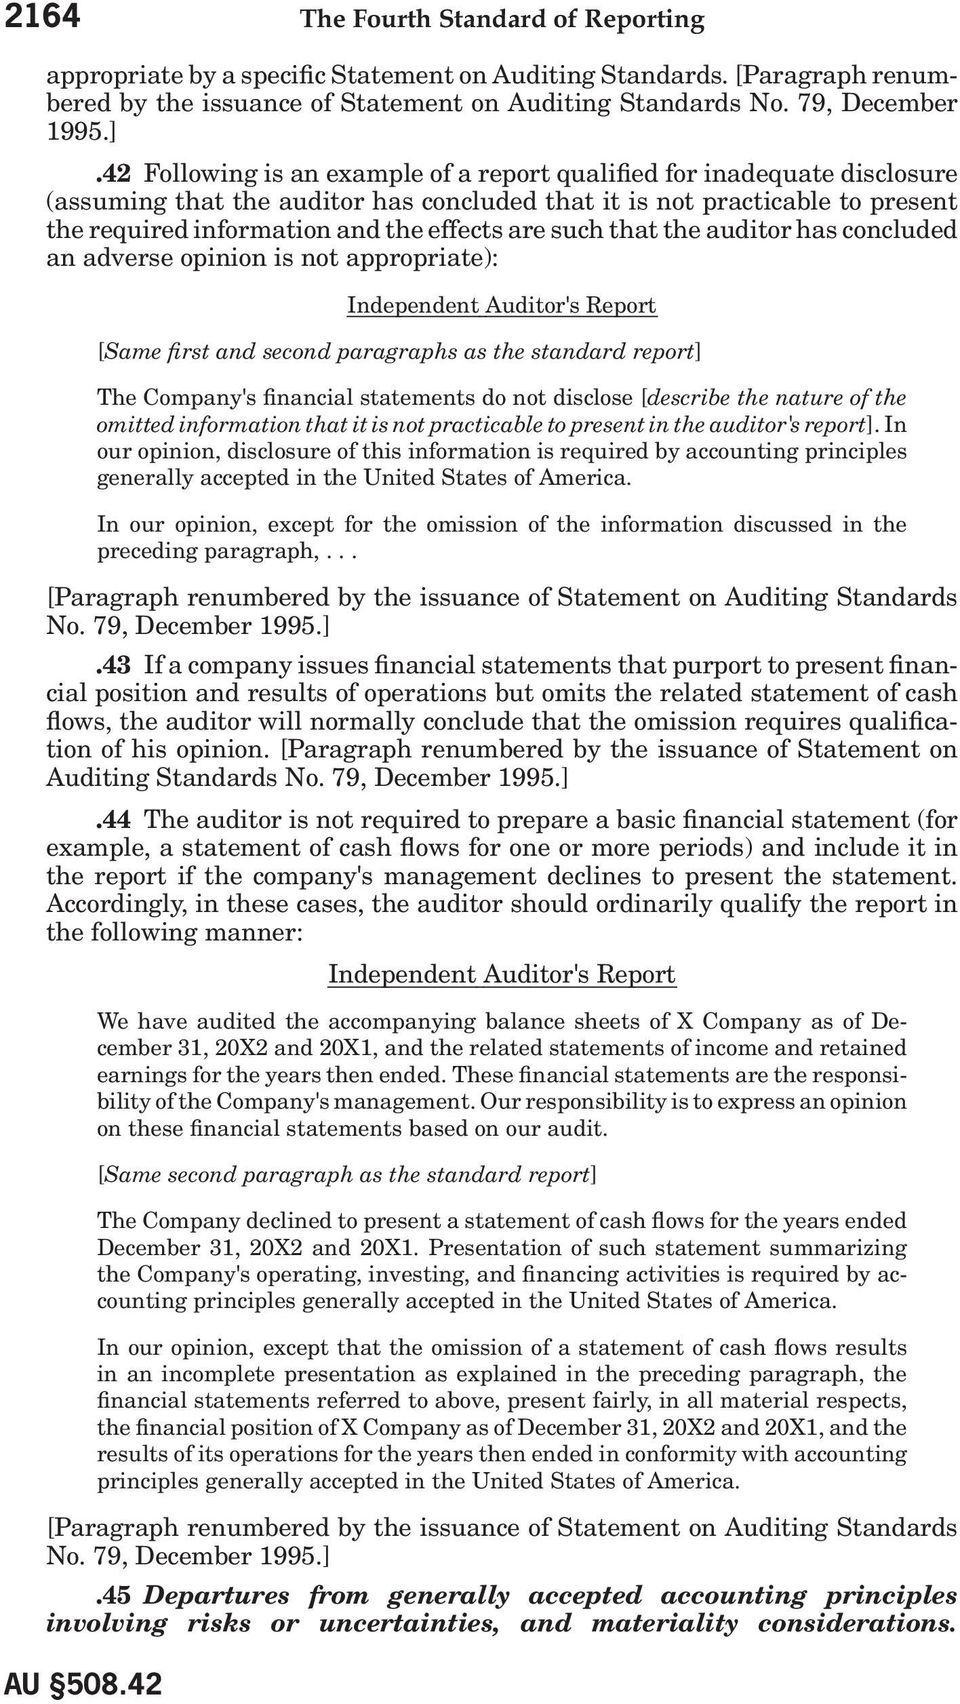 such that the auditor has concluded an adverse opinion is not appropriate): [Same first and second paragraphs as the standard report] The Company's financial statements do not disclose [describe the